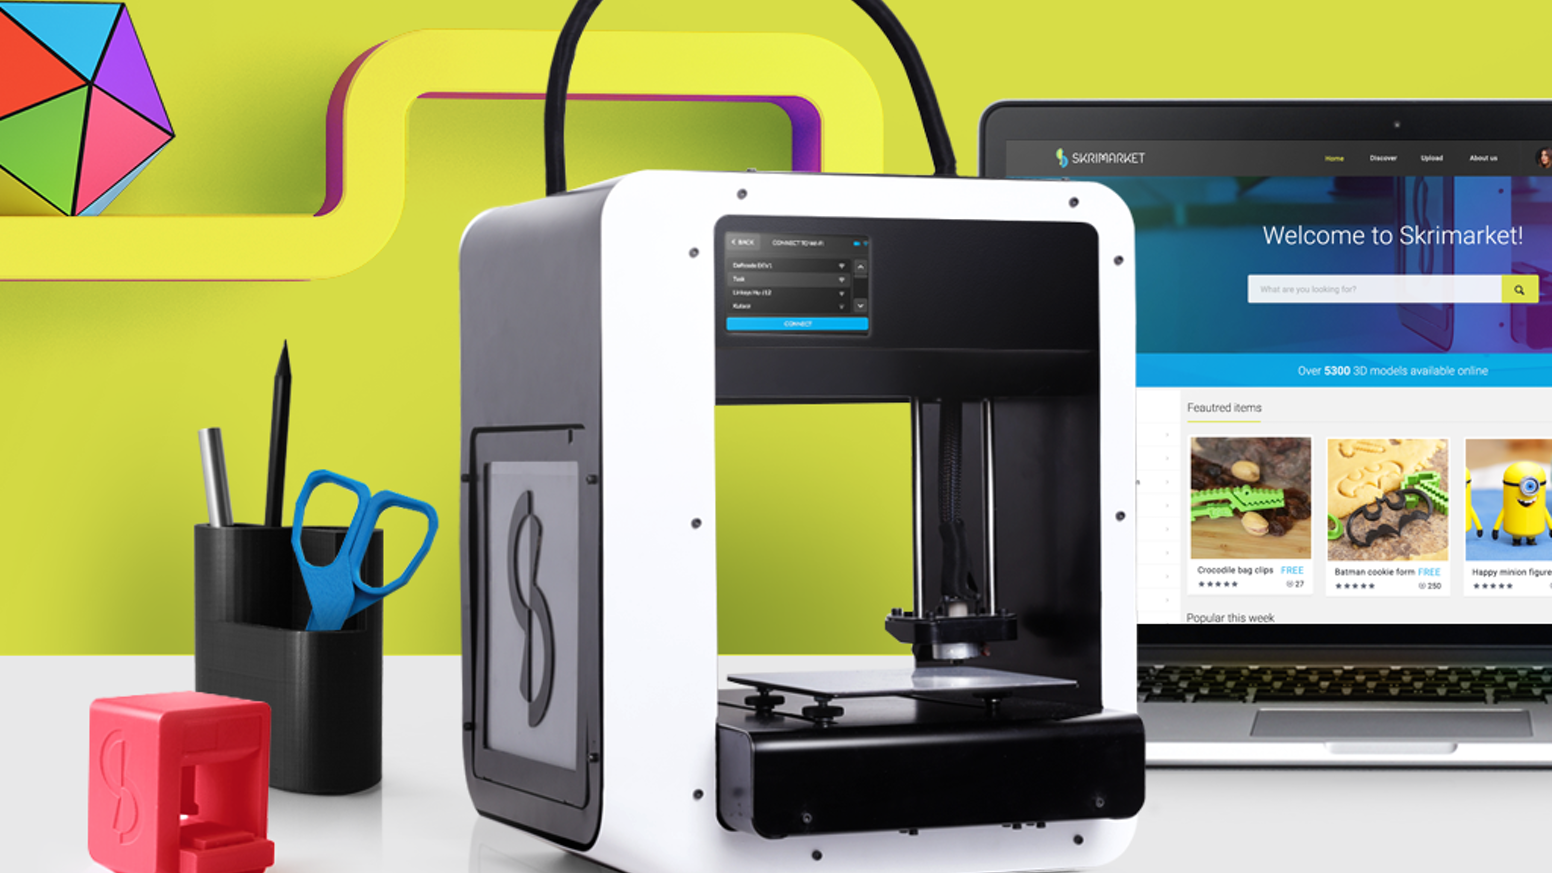 We turn 3D printing into an everyday activity. Our printers enable printing straight from the online marketplace with just one click!